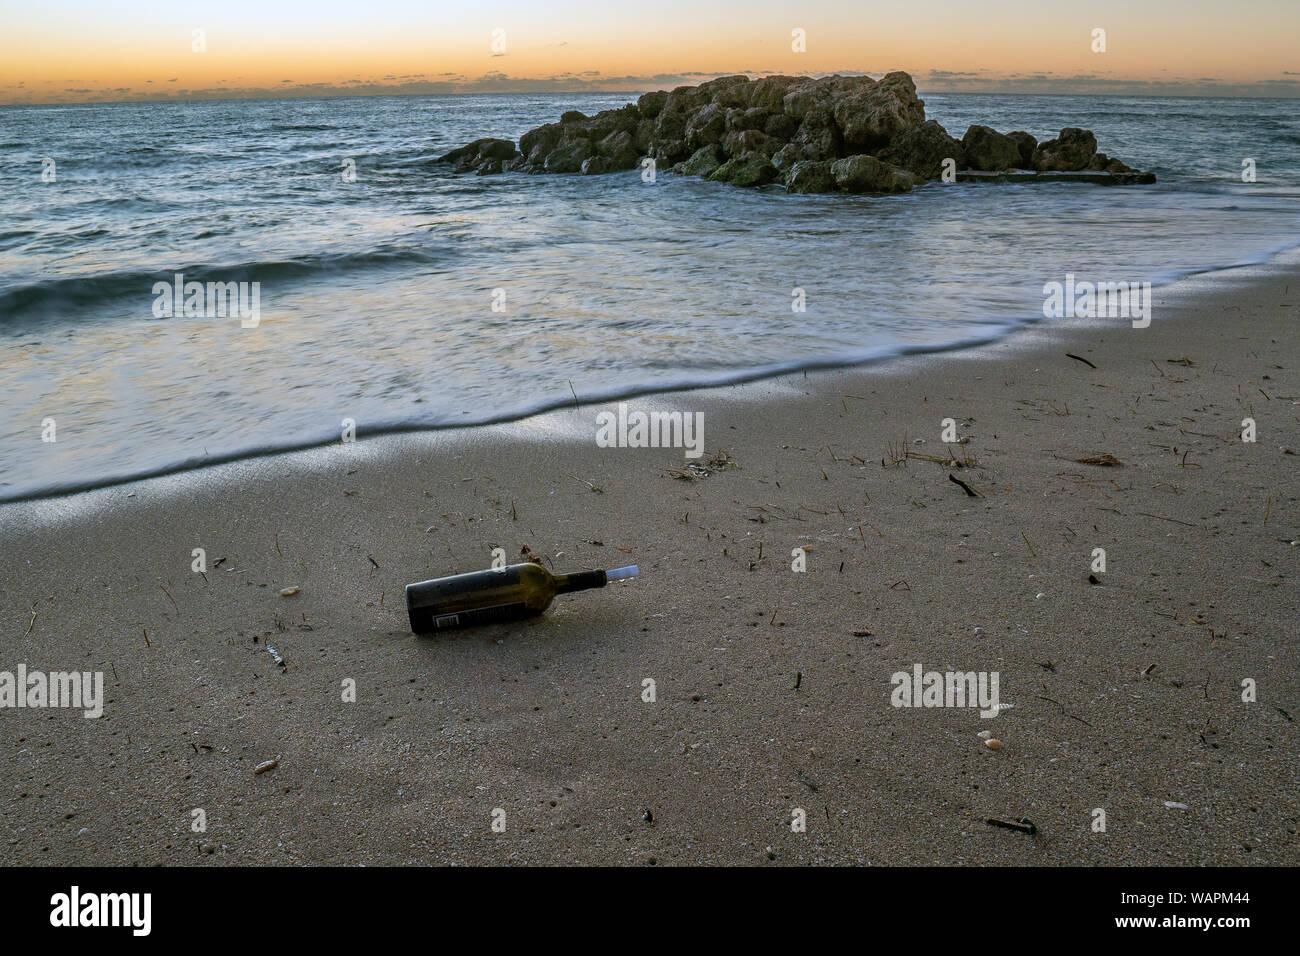 Wine bottle with a rolled up piece of paper washed up on a sandy beach. Stock Photo